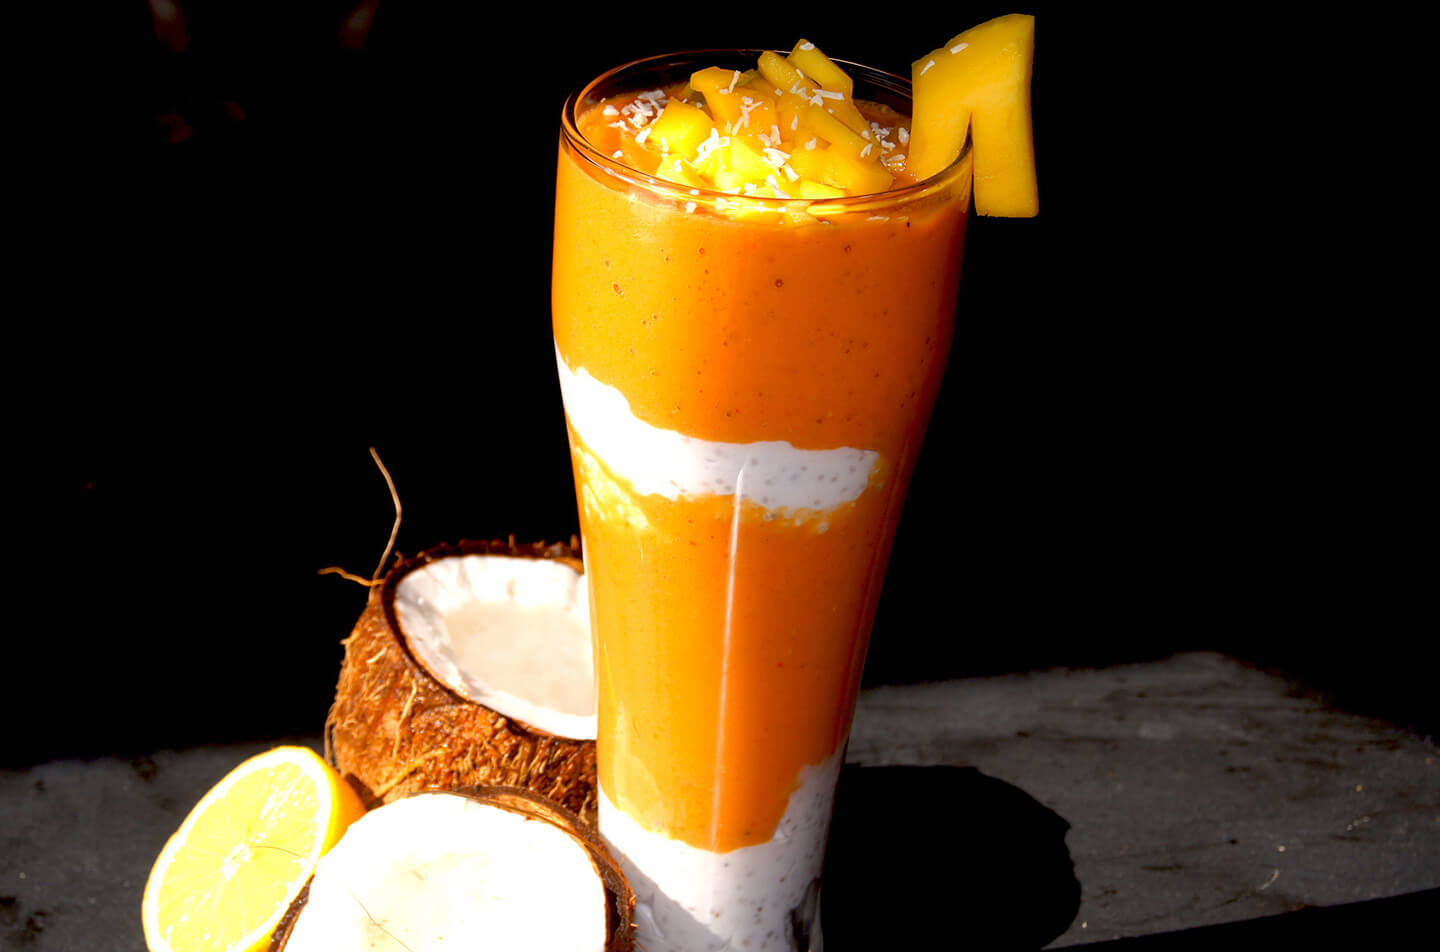 Mango and goji berry smoothie parfait with chia seeds and coconut